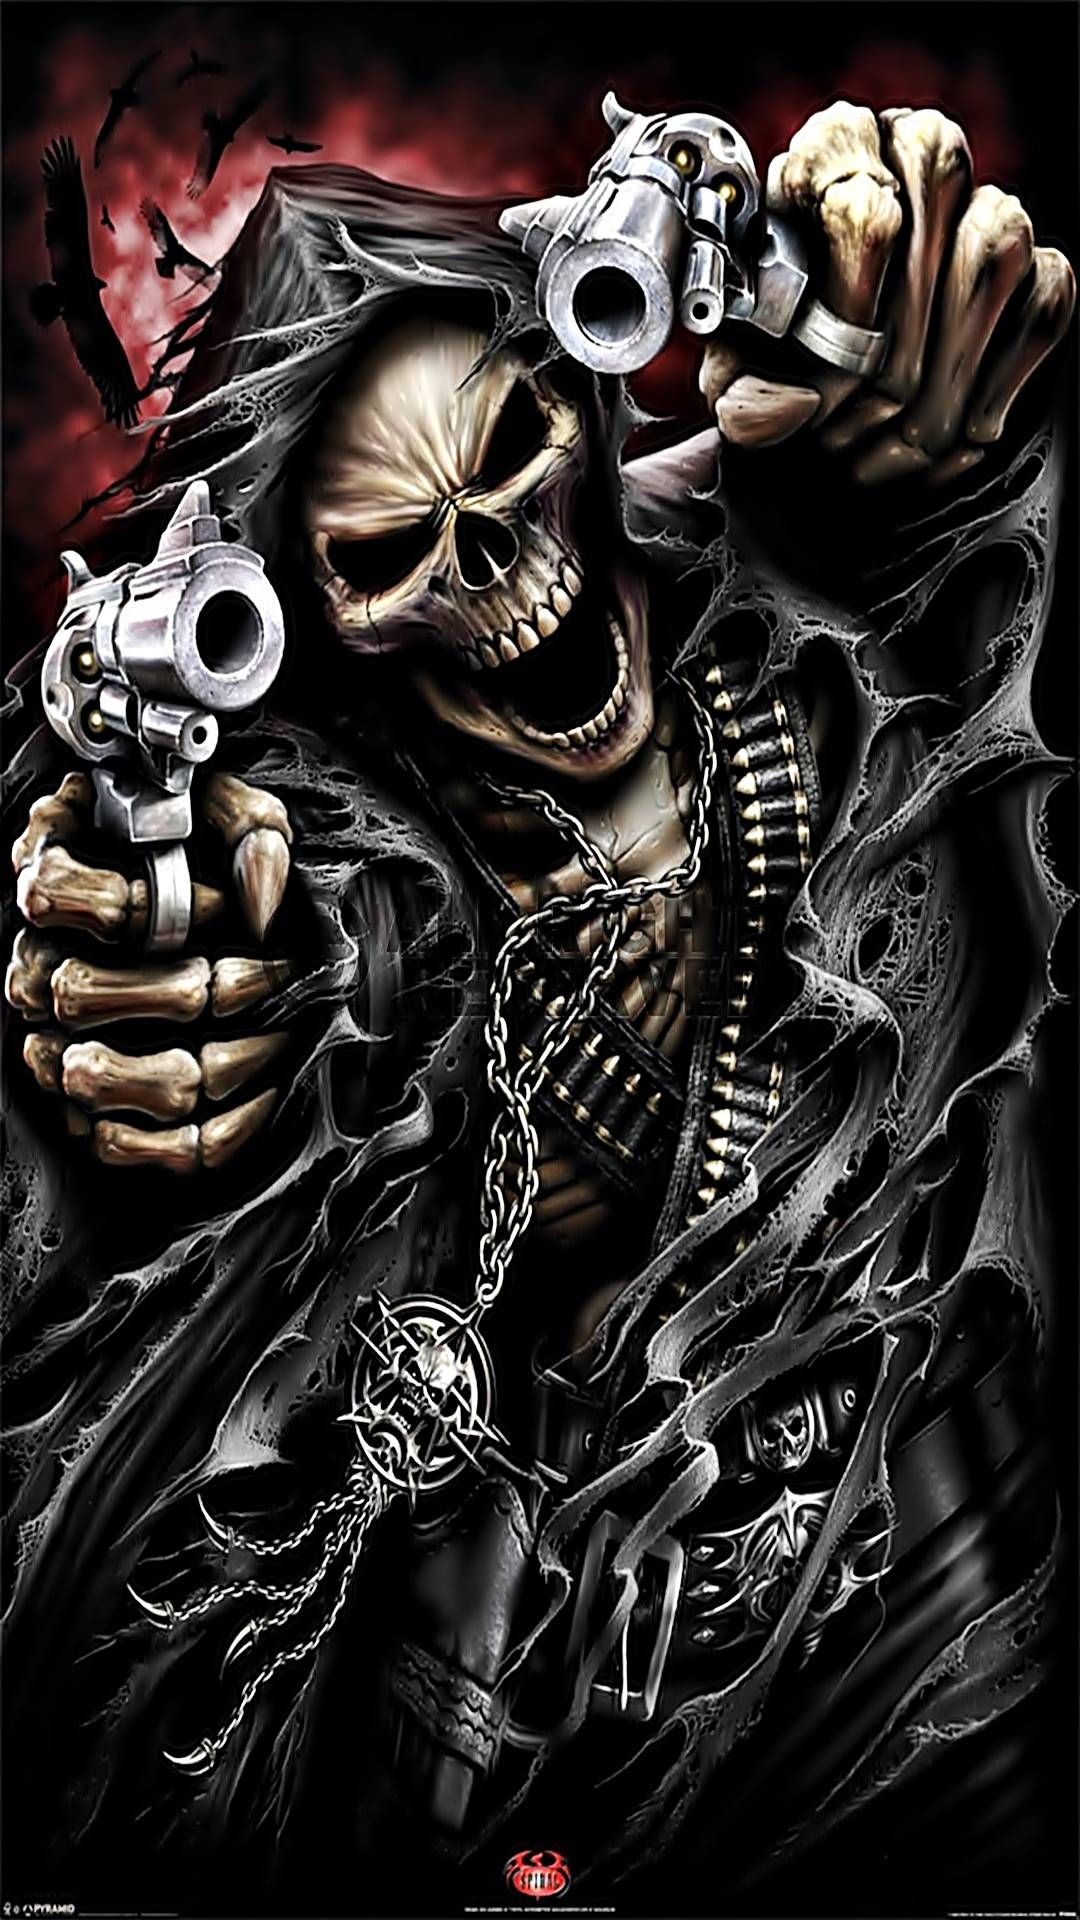 Skull Mobile Hd Wallpaper In 2020 Skull Wallpaper Skull Pictures Grim Reaper Art